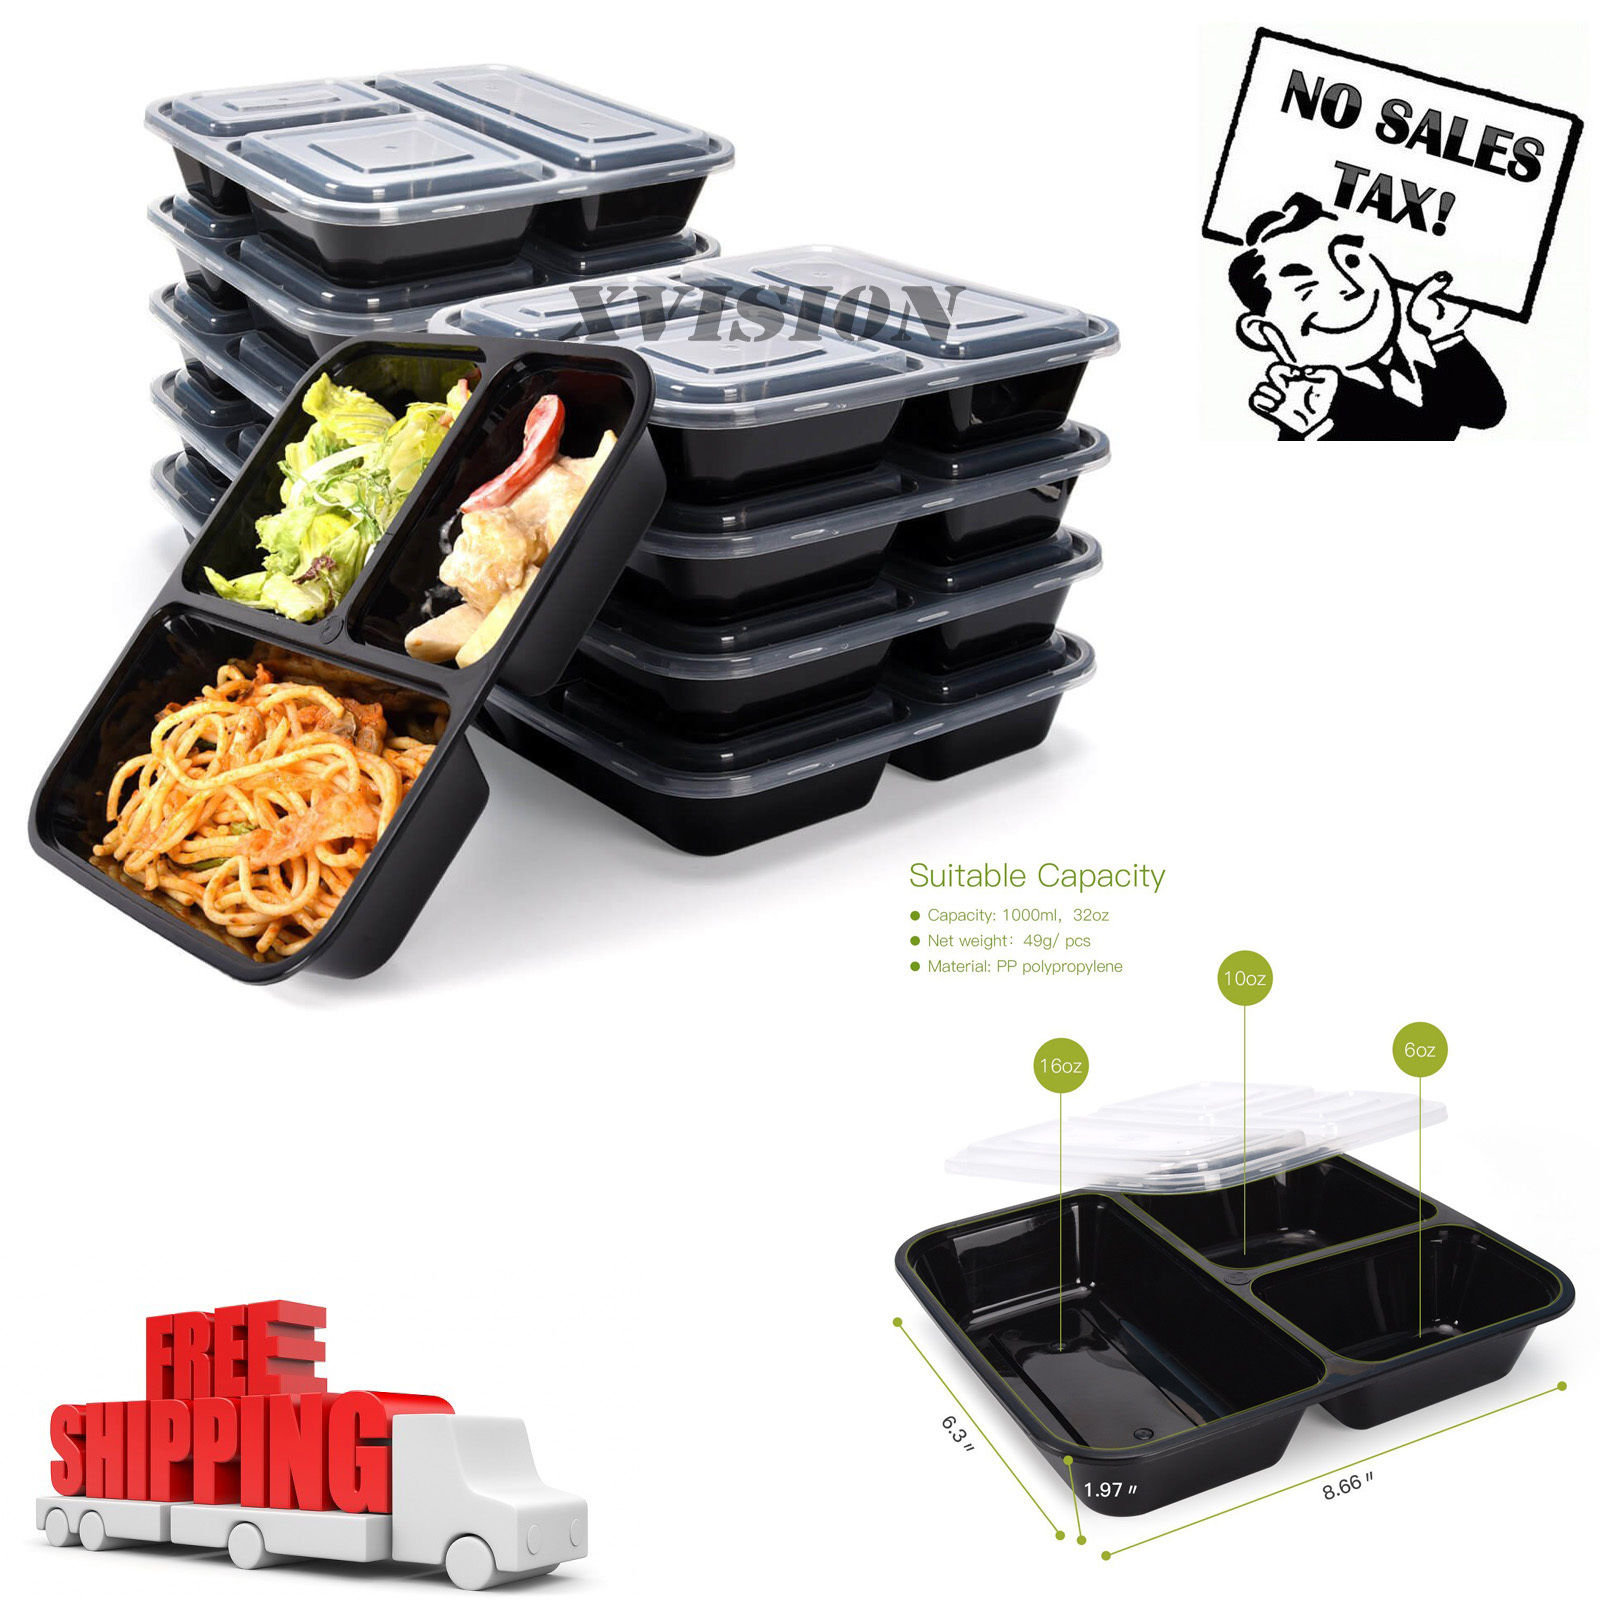 10 Meal Prep Containers 3 Compartment Food Storage Reusable Microwavable Plastic 1